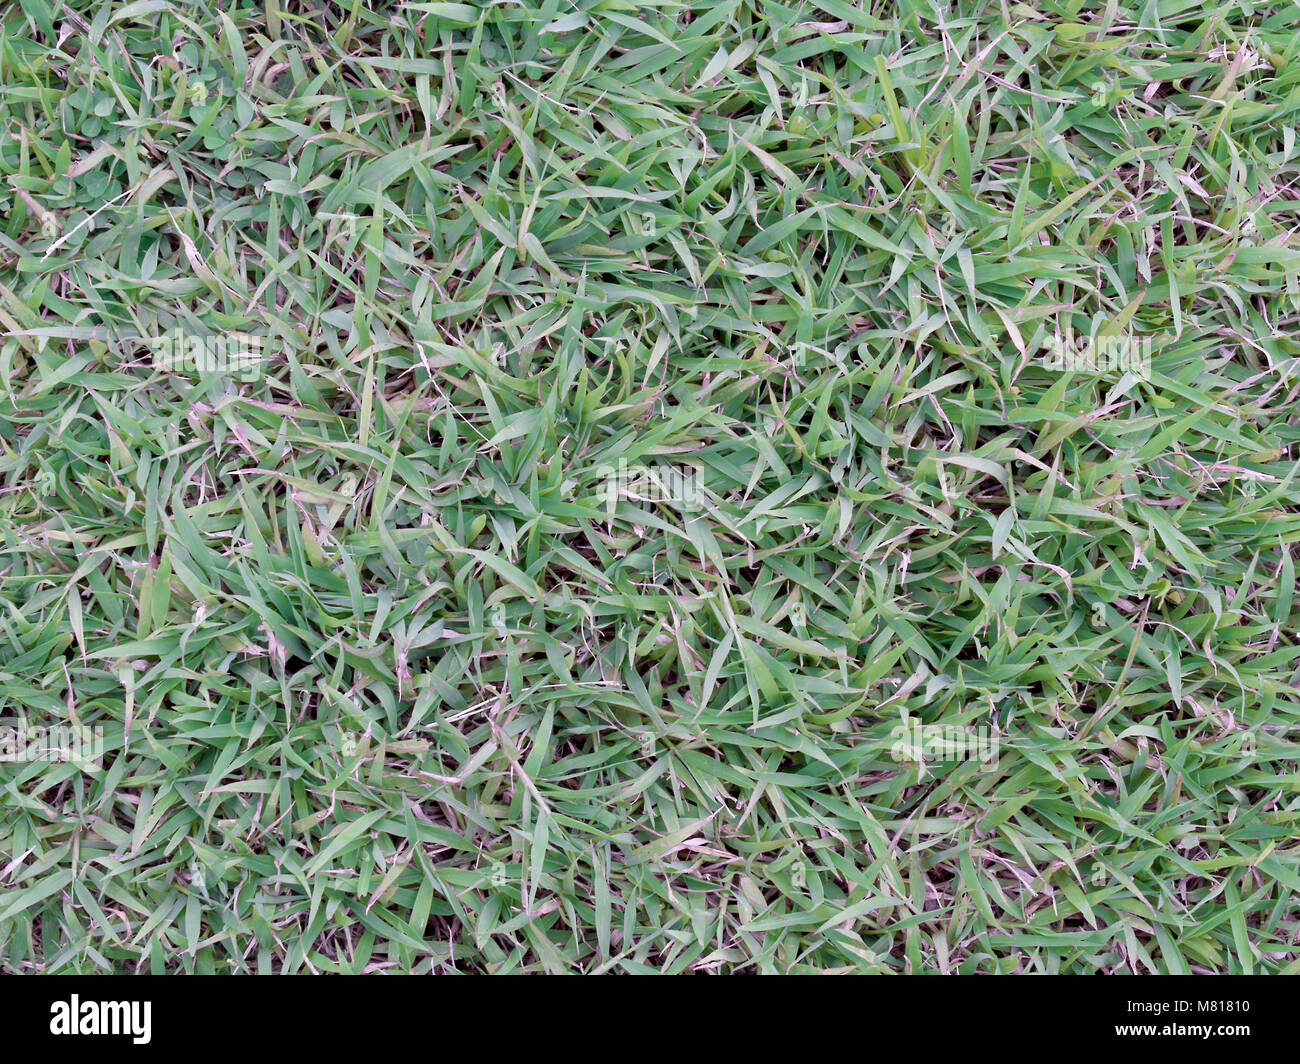 Grass, grass family (Gramineae) is a space Beach monocots. - Stock Image